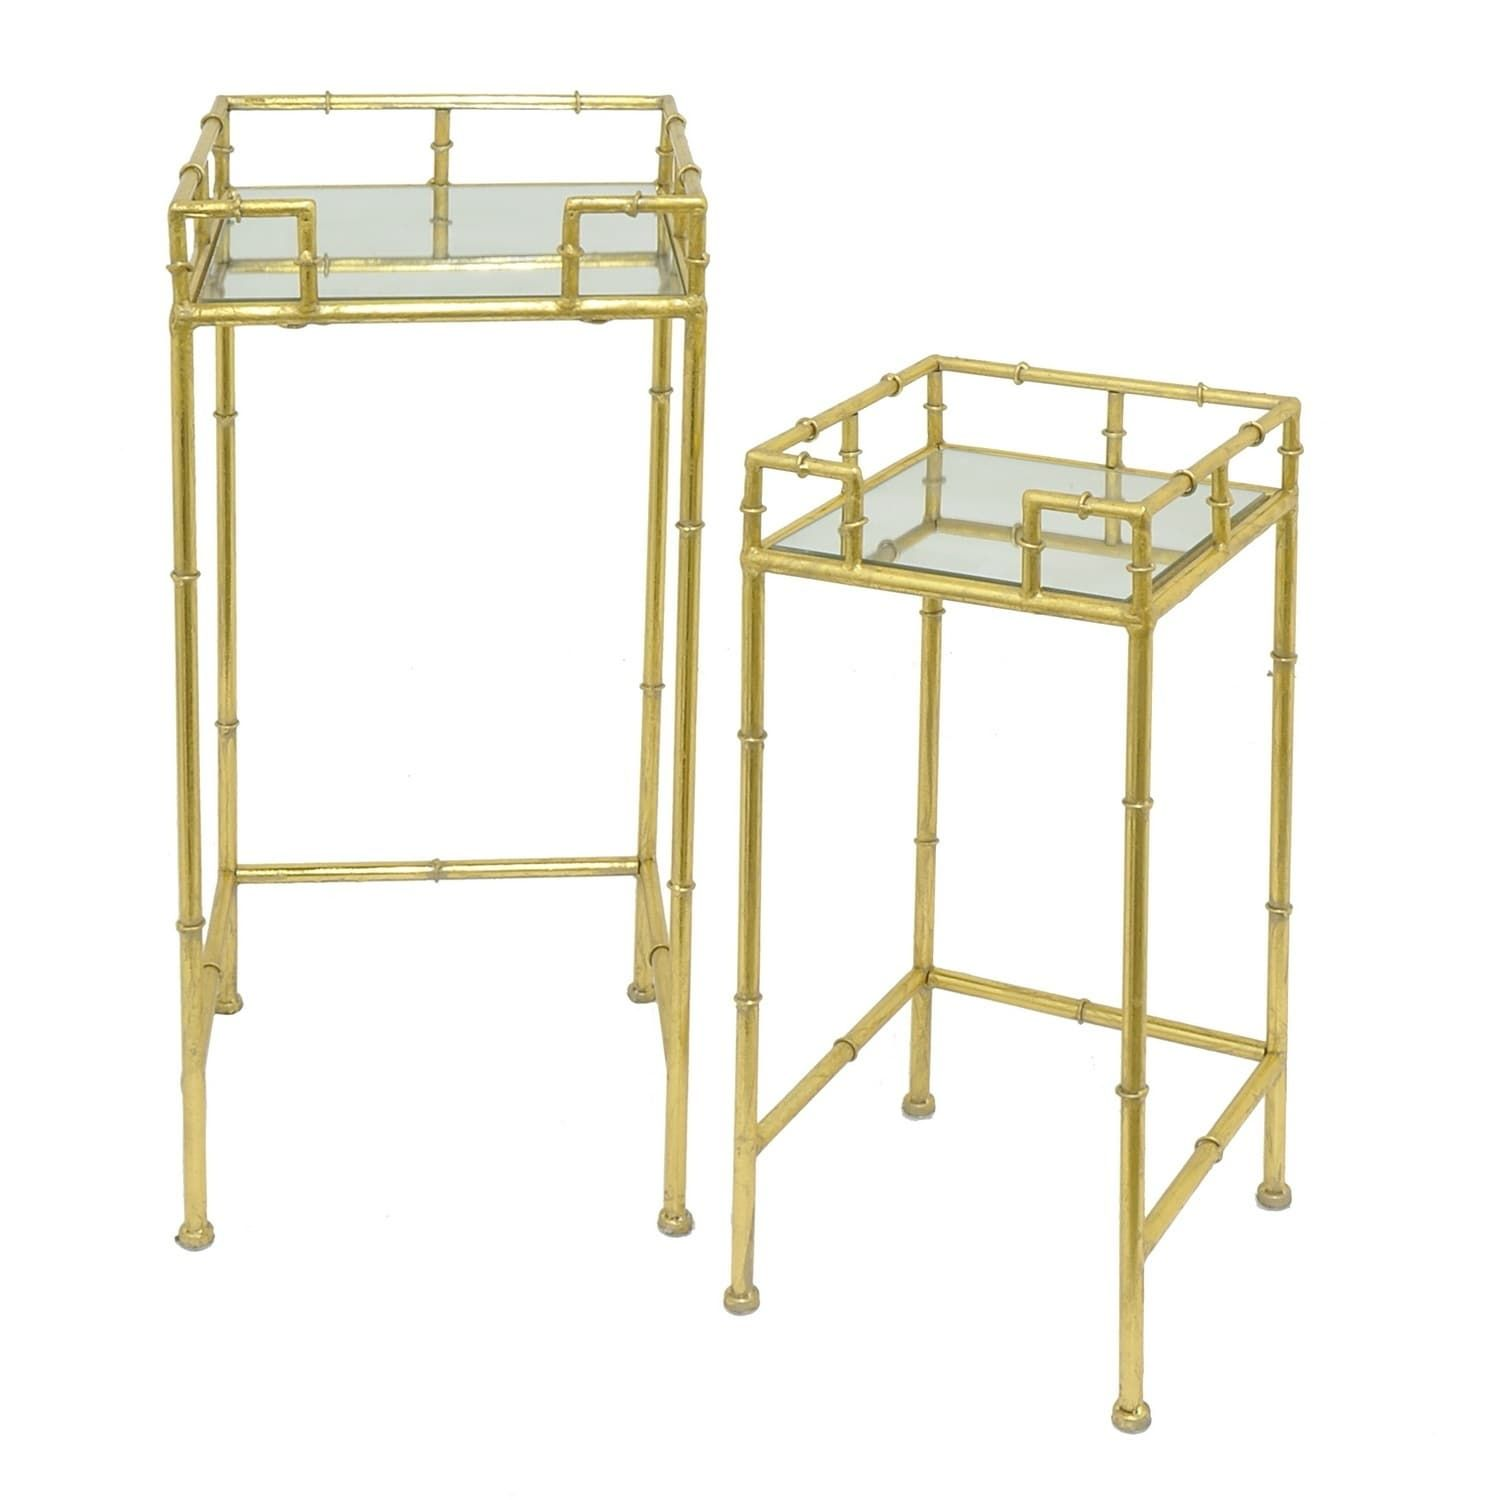 three hands goldtone metal mirrored accent table set gold mirror shelves shabby chic desk step side glass stacking tables safavieh treasures replica retro furniture round outdoor